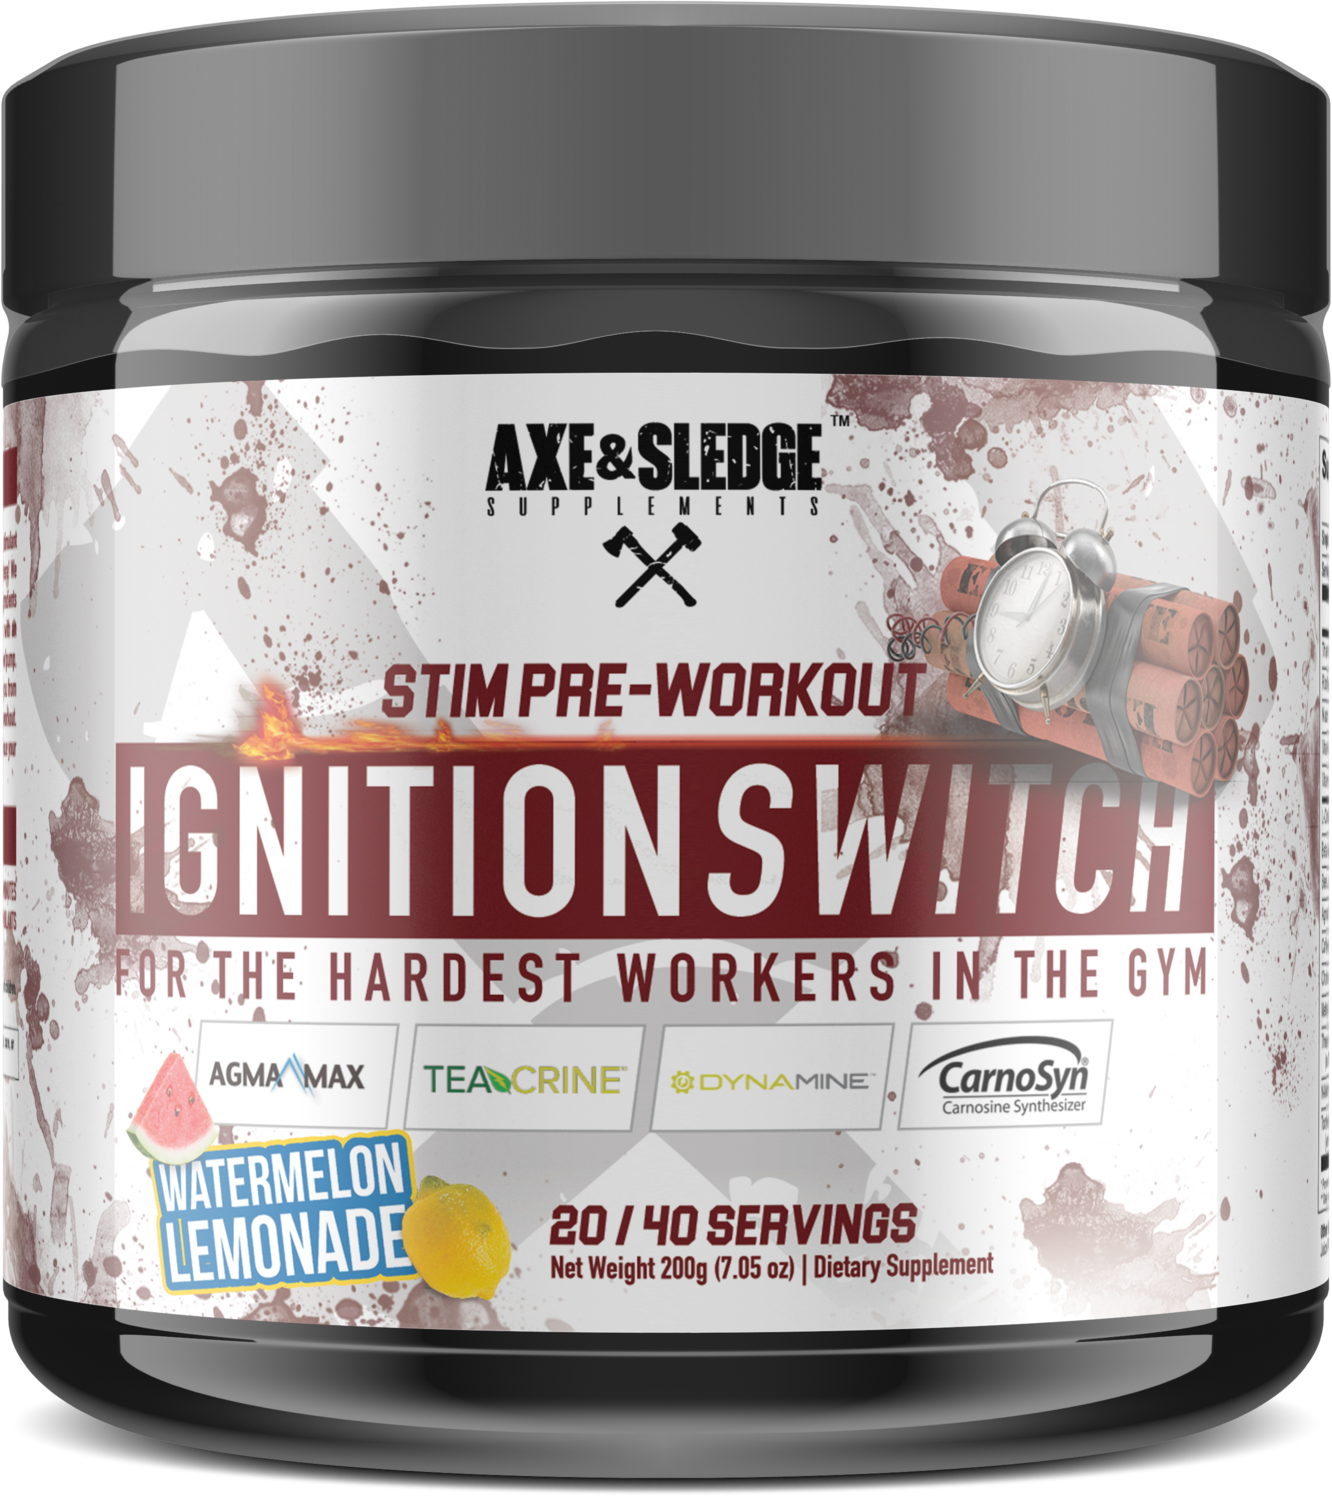 axe and sledge supplements discount code